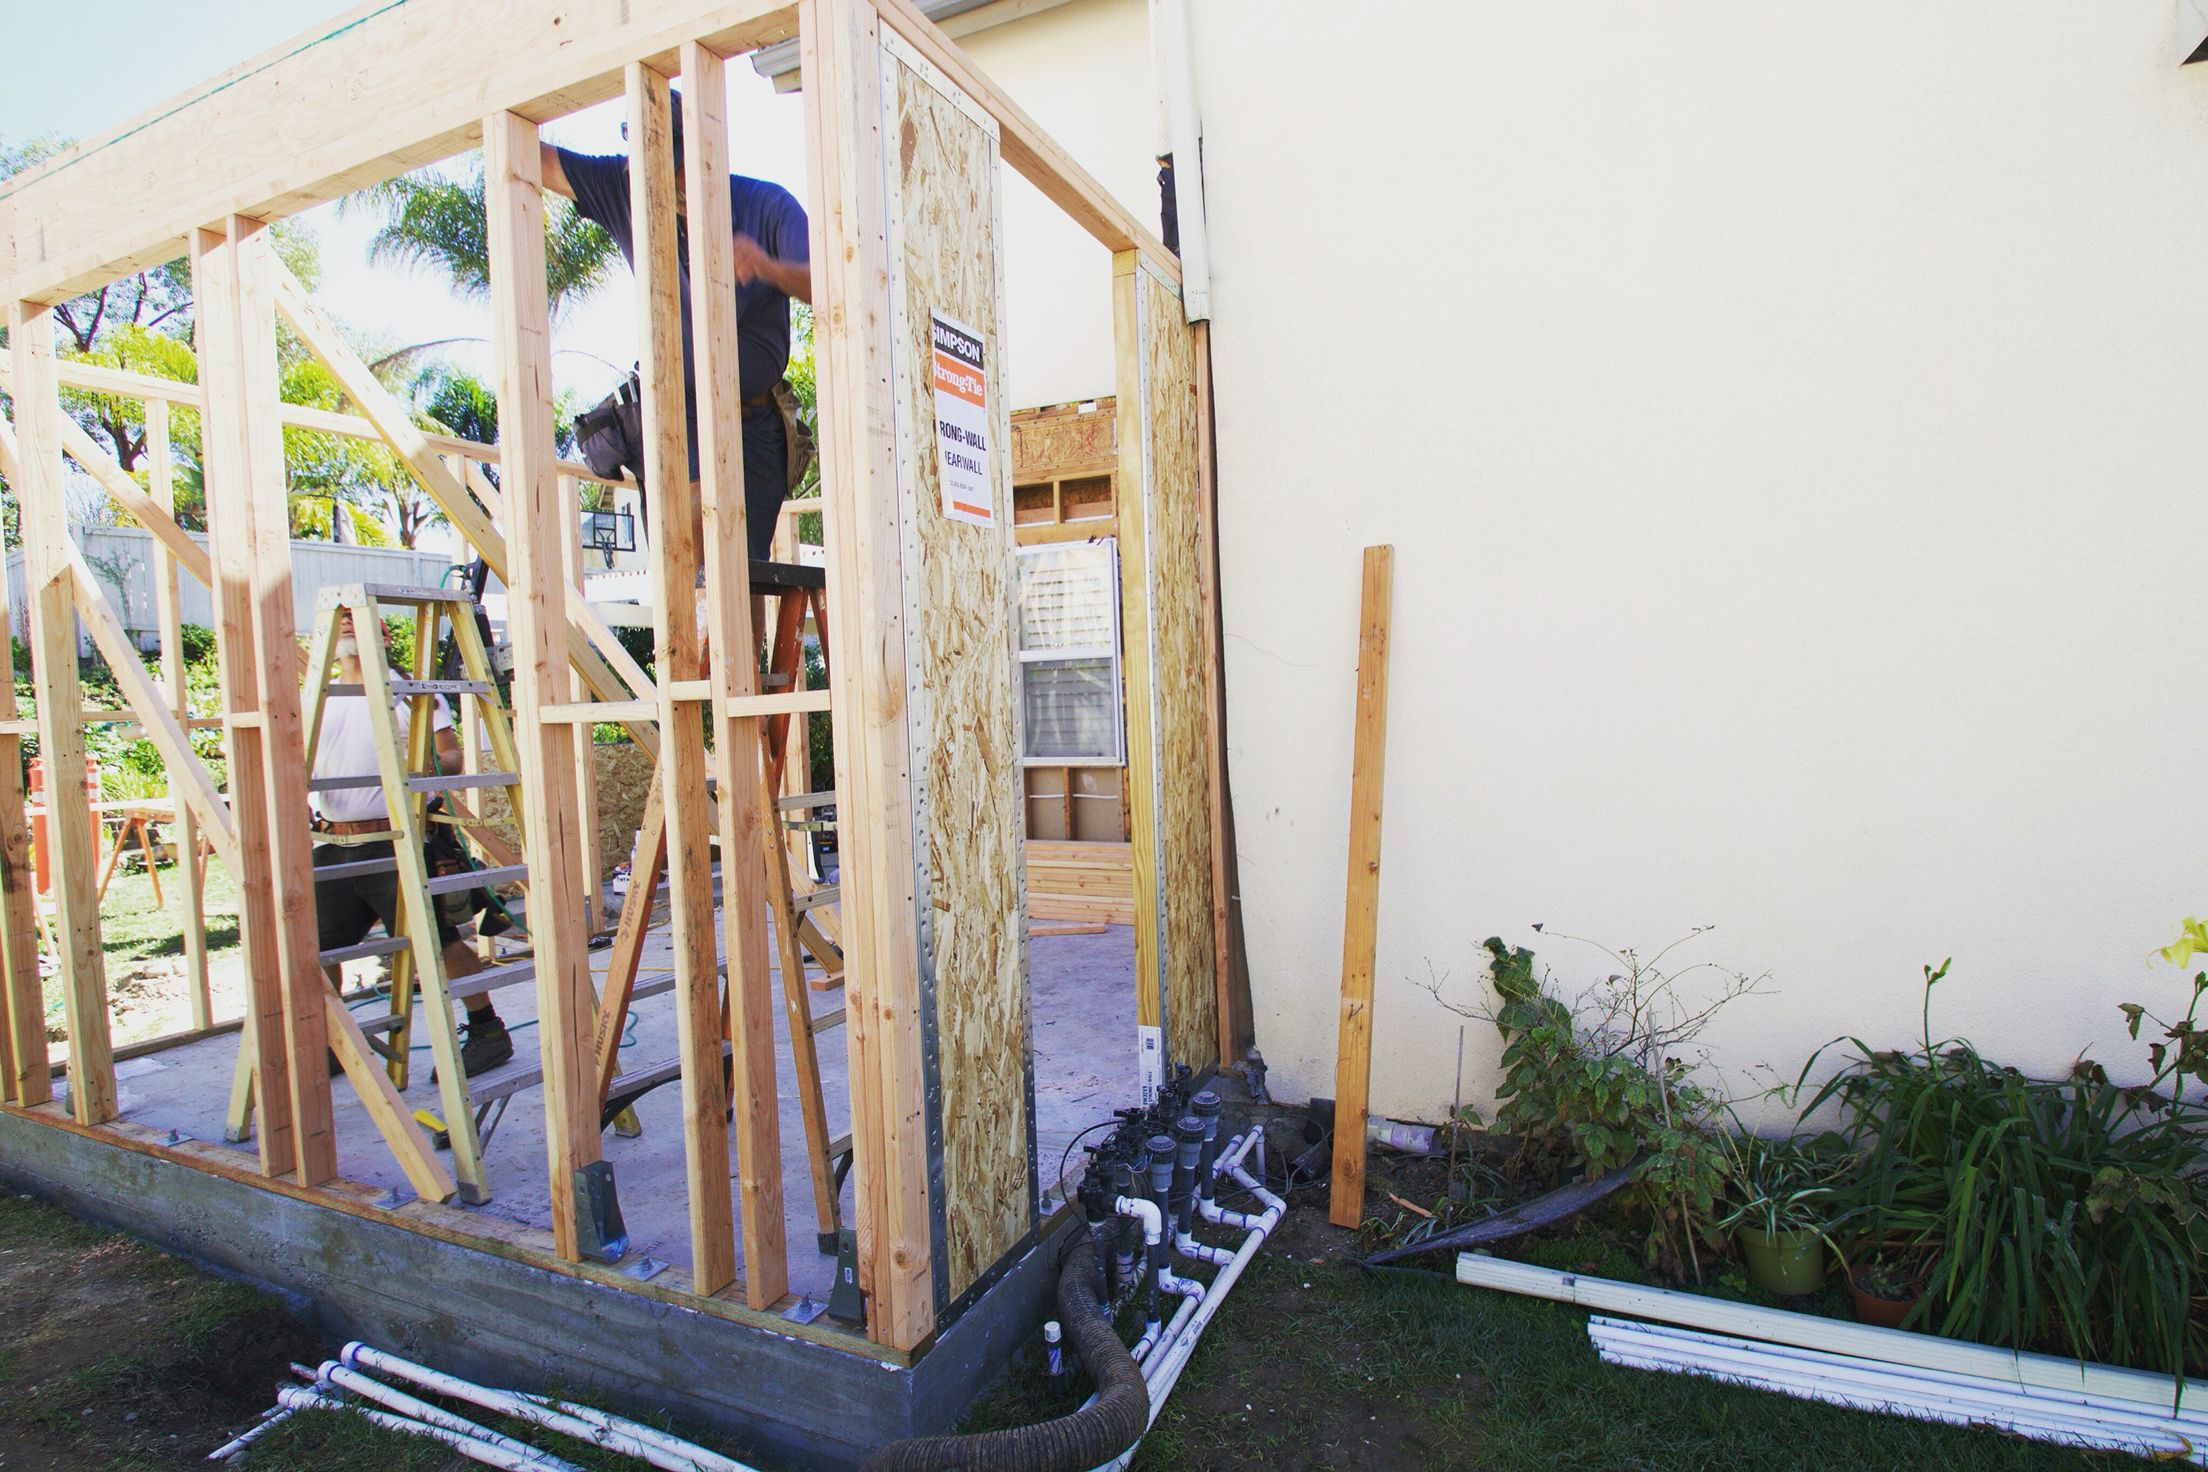 Room addition in process. The framing is underway. The team is working hard on this project! #underconstruct… - Design build firm, Building design, Room additions